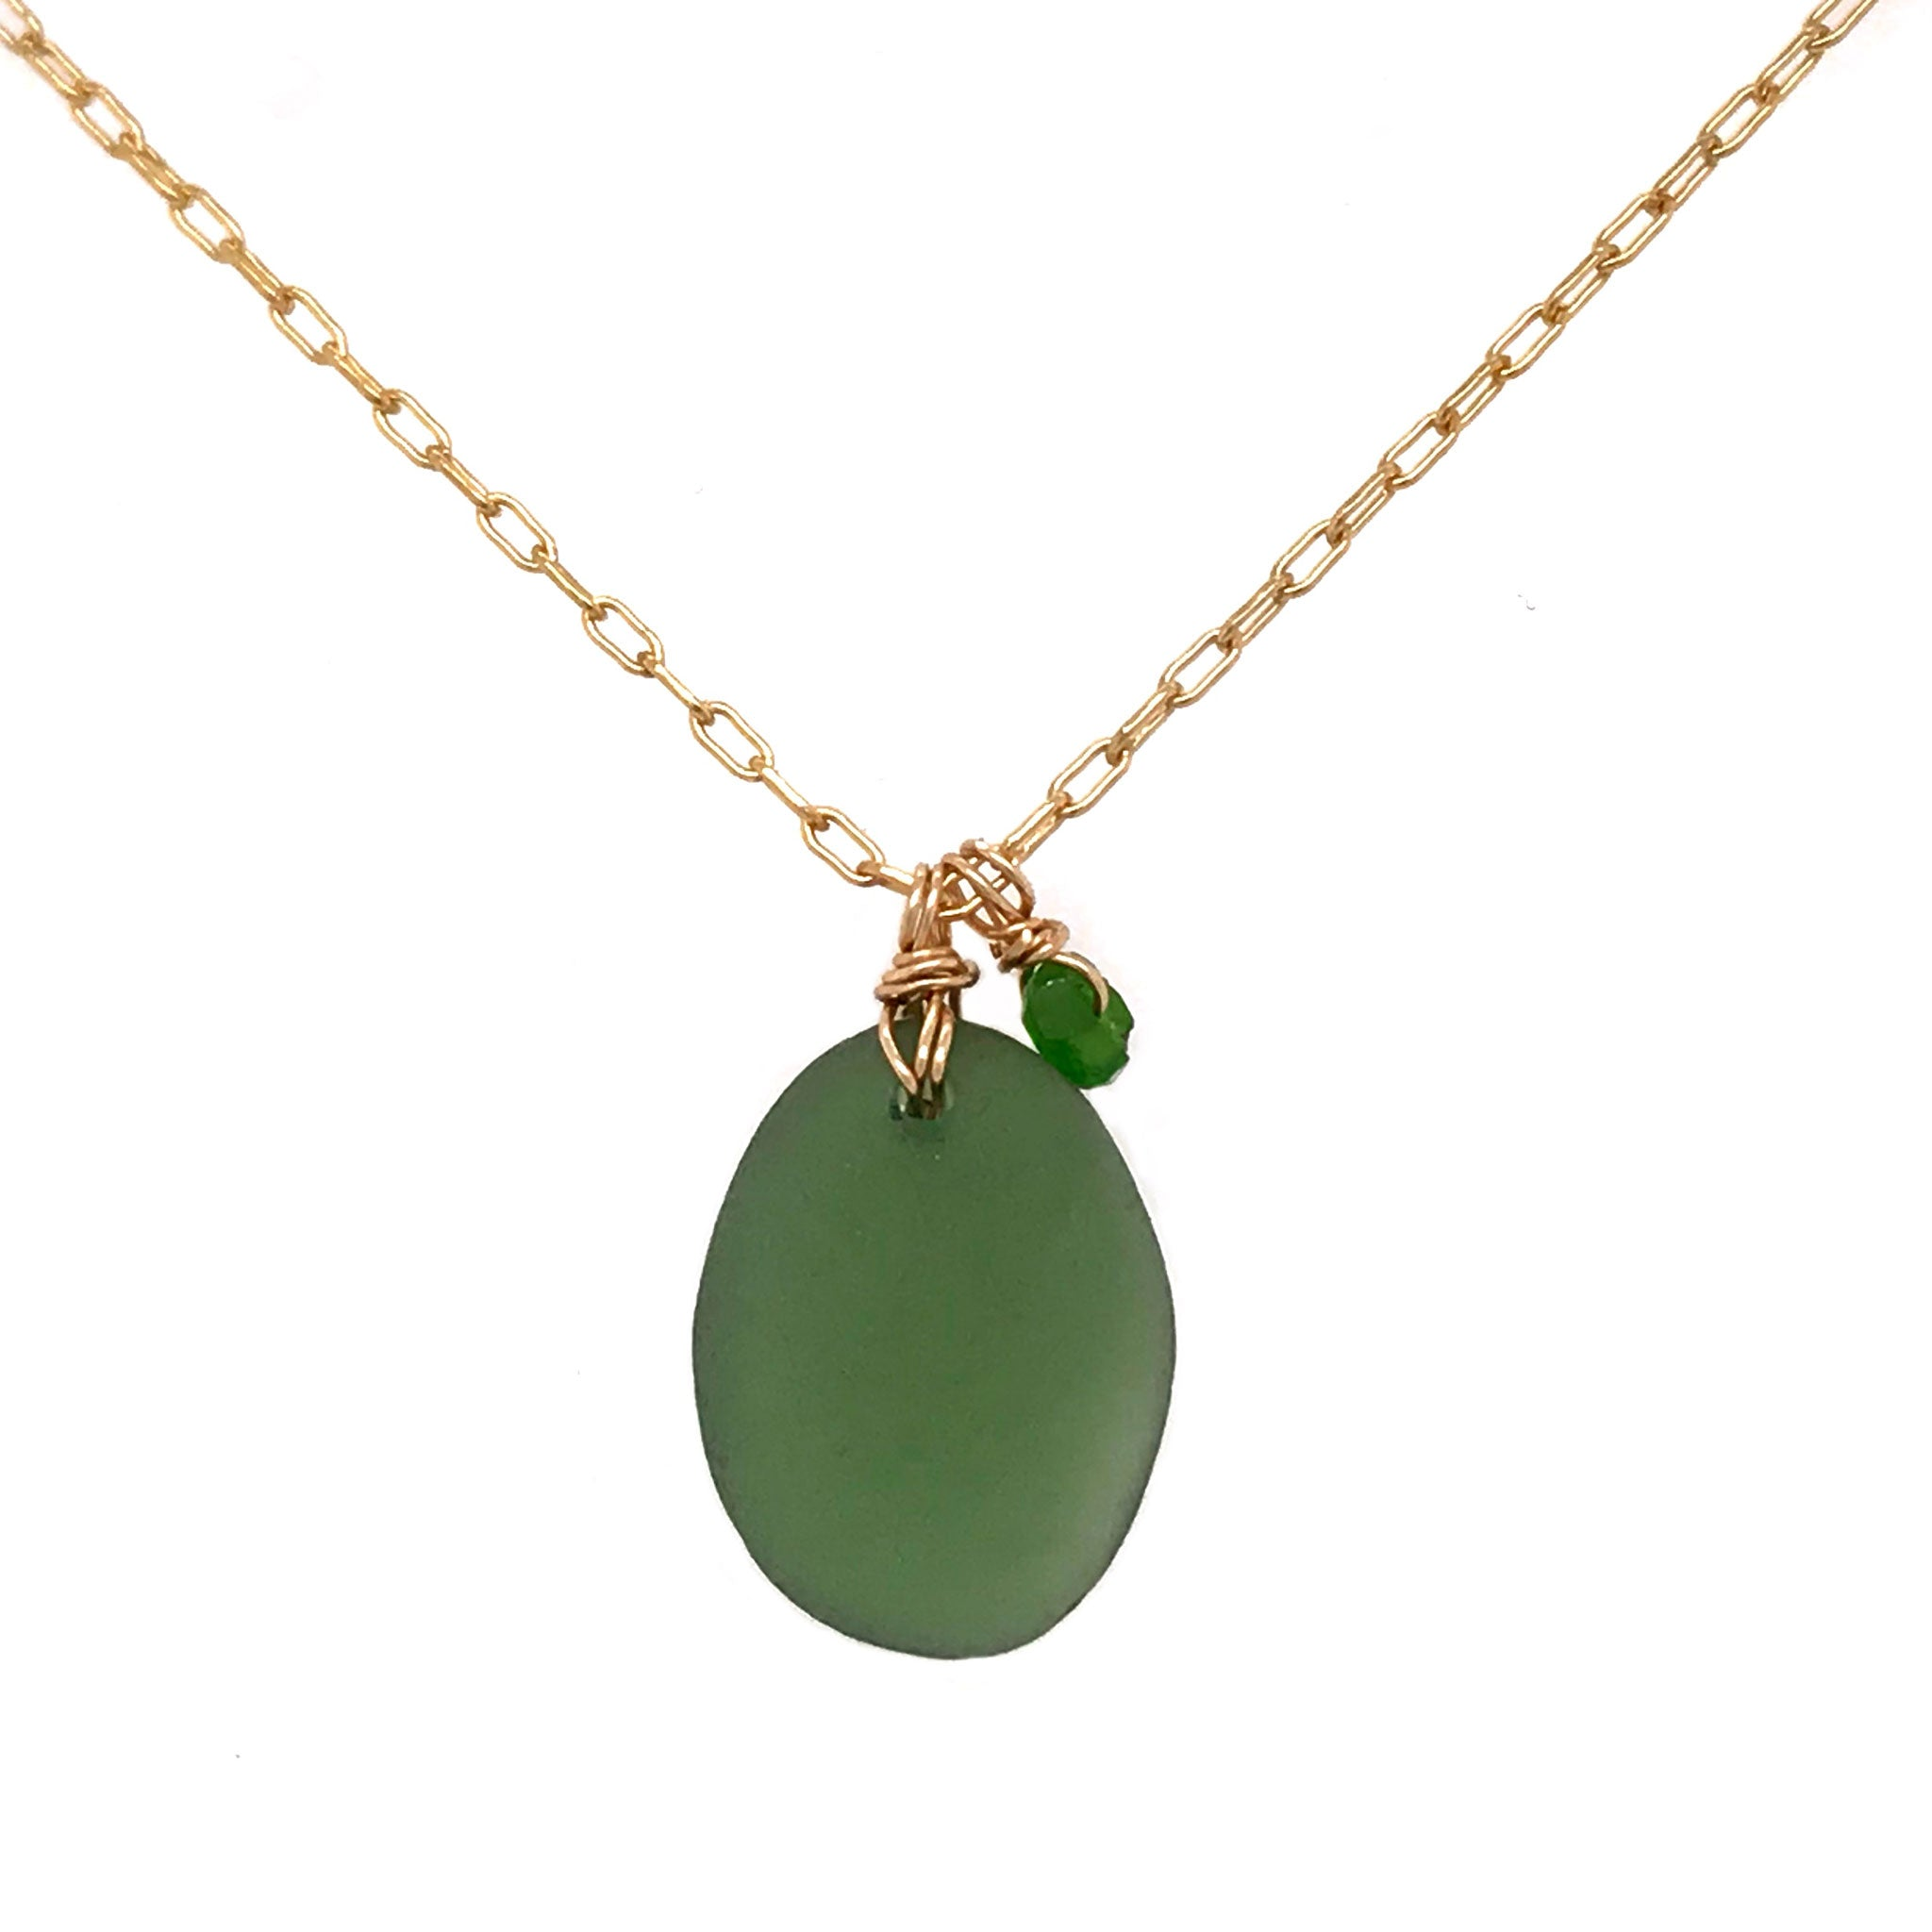 gold necklace with green seaglass and tsavorite stones kriket Broadhurst jewellery